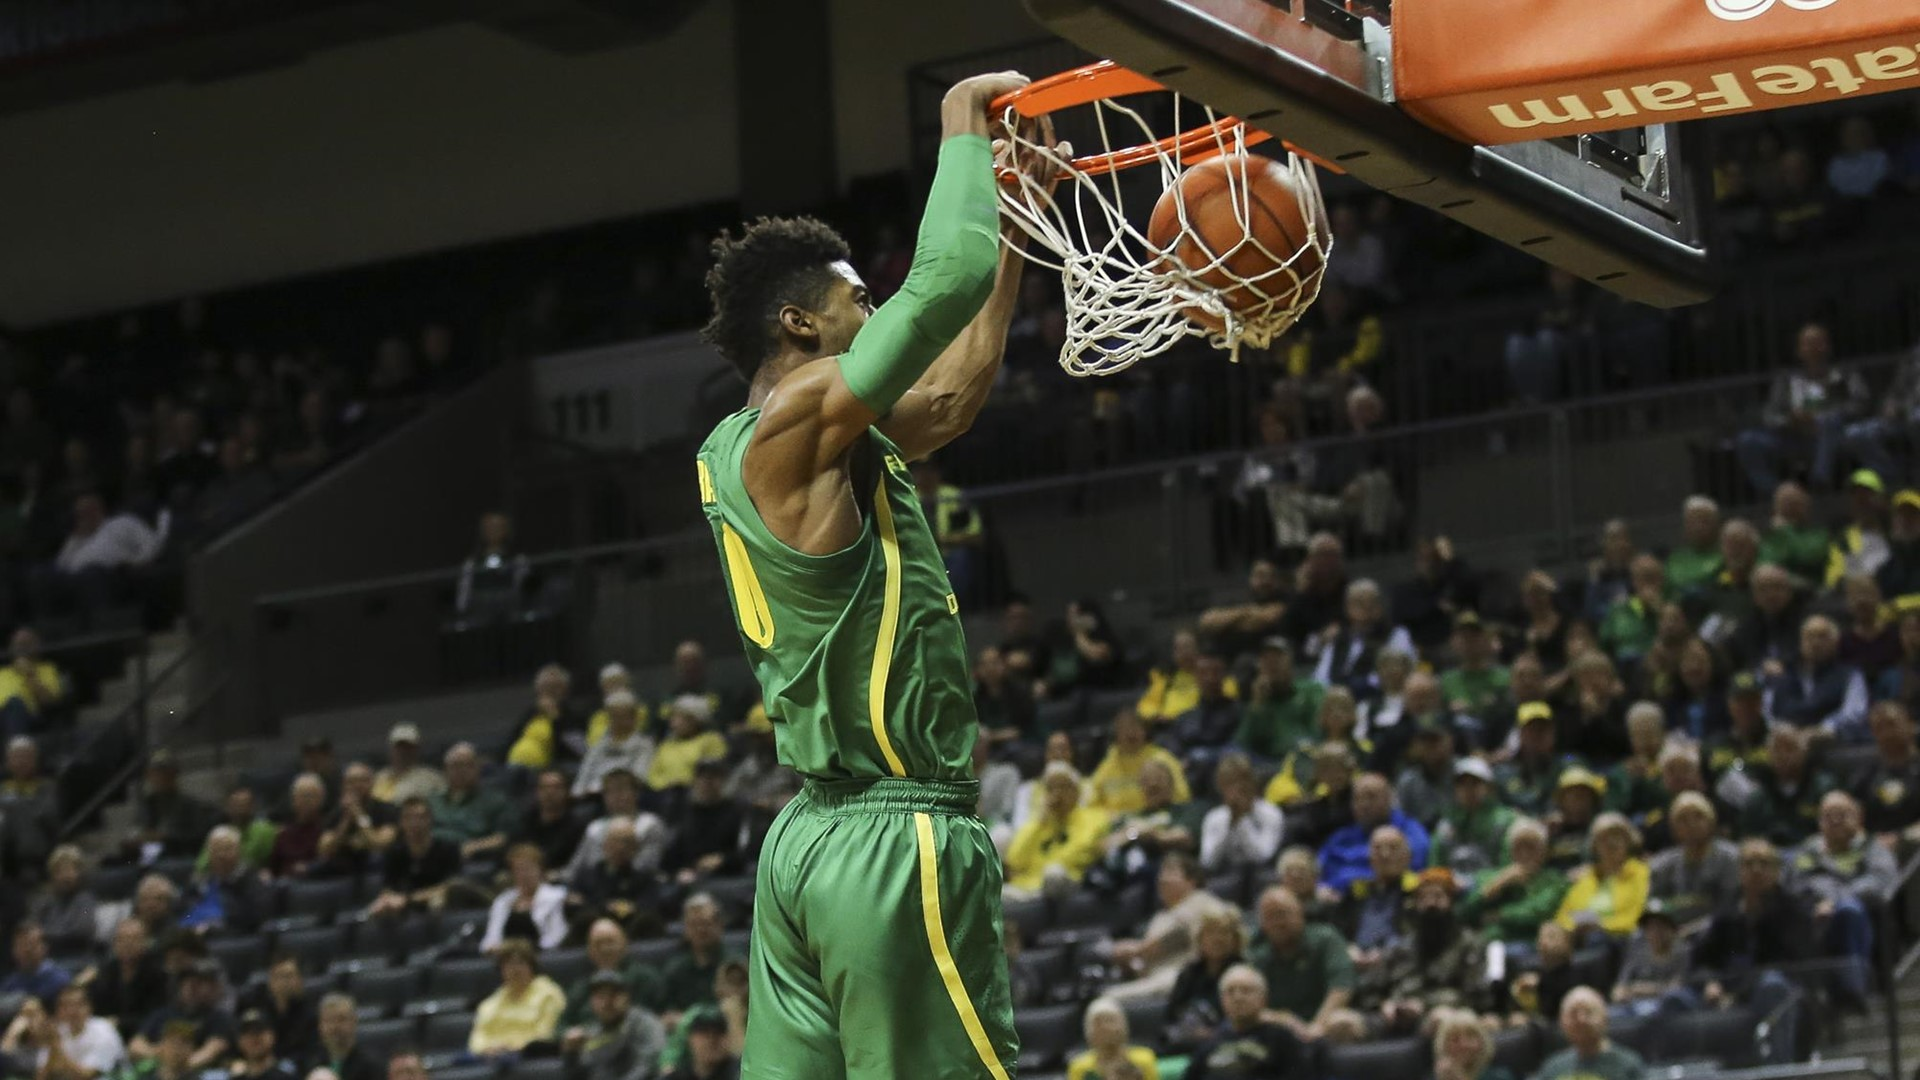 The Oregon Ducks take on the Florida A&M Rattlers at Matthew Knight Arena in Eugene, Oregon on December 18, 2018 (Eric Evans Photography)